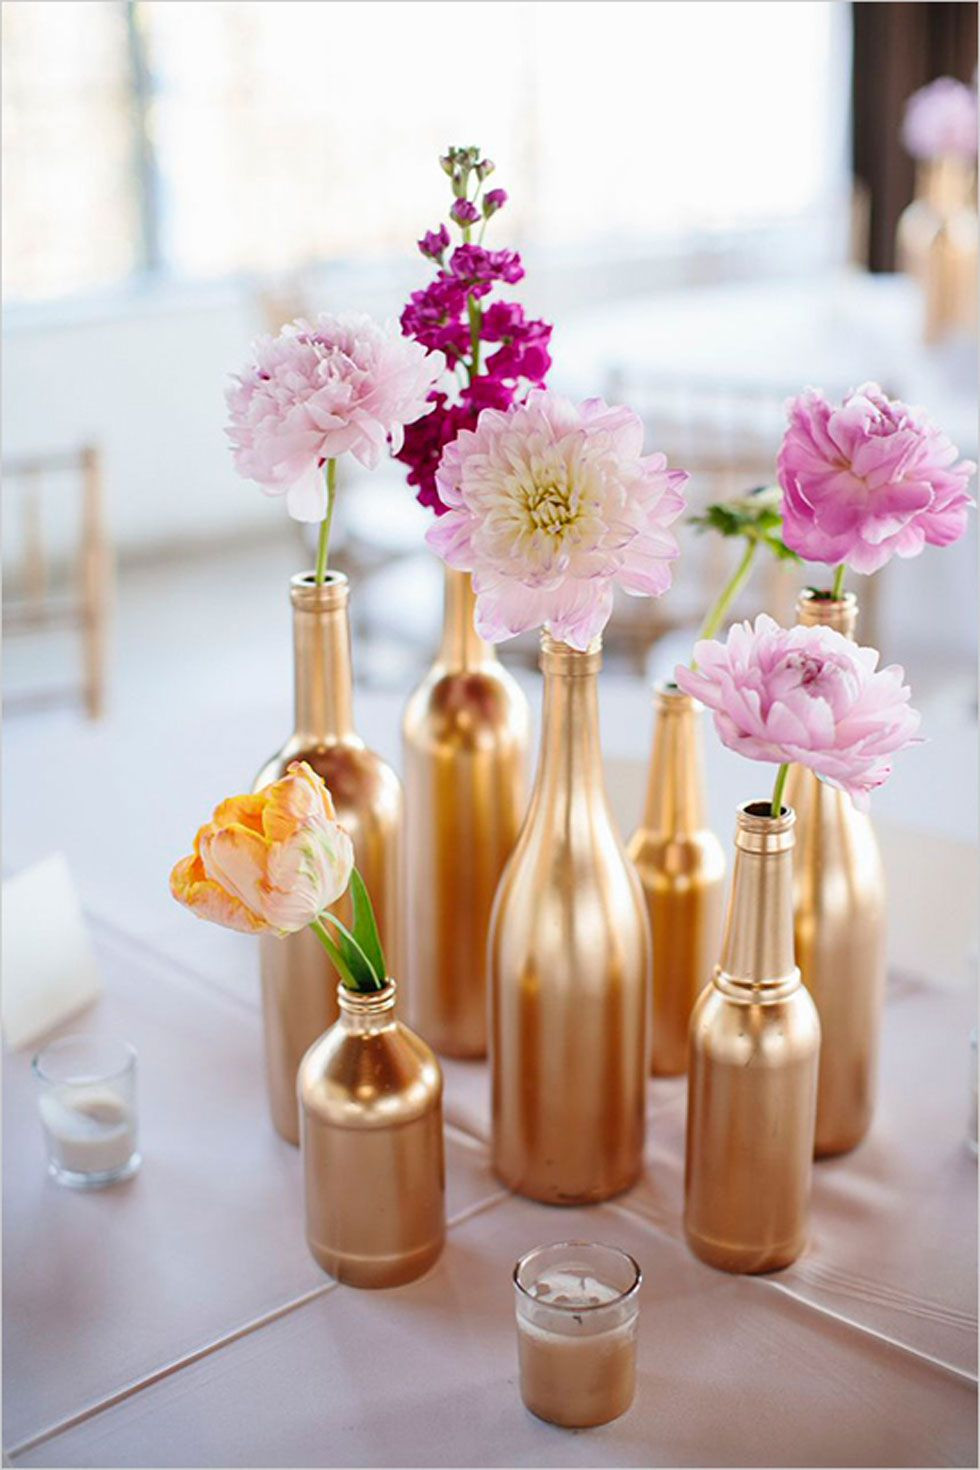 17 Unique Ideas for Glass Vases for Centerpieces 2021 free download ideas for glass vases for centerpieces of 55 creative bridal shower ideas that are as special as the bride to with these spray painted glass bottles look gorgeous as simple vases for individ